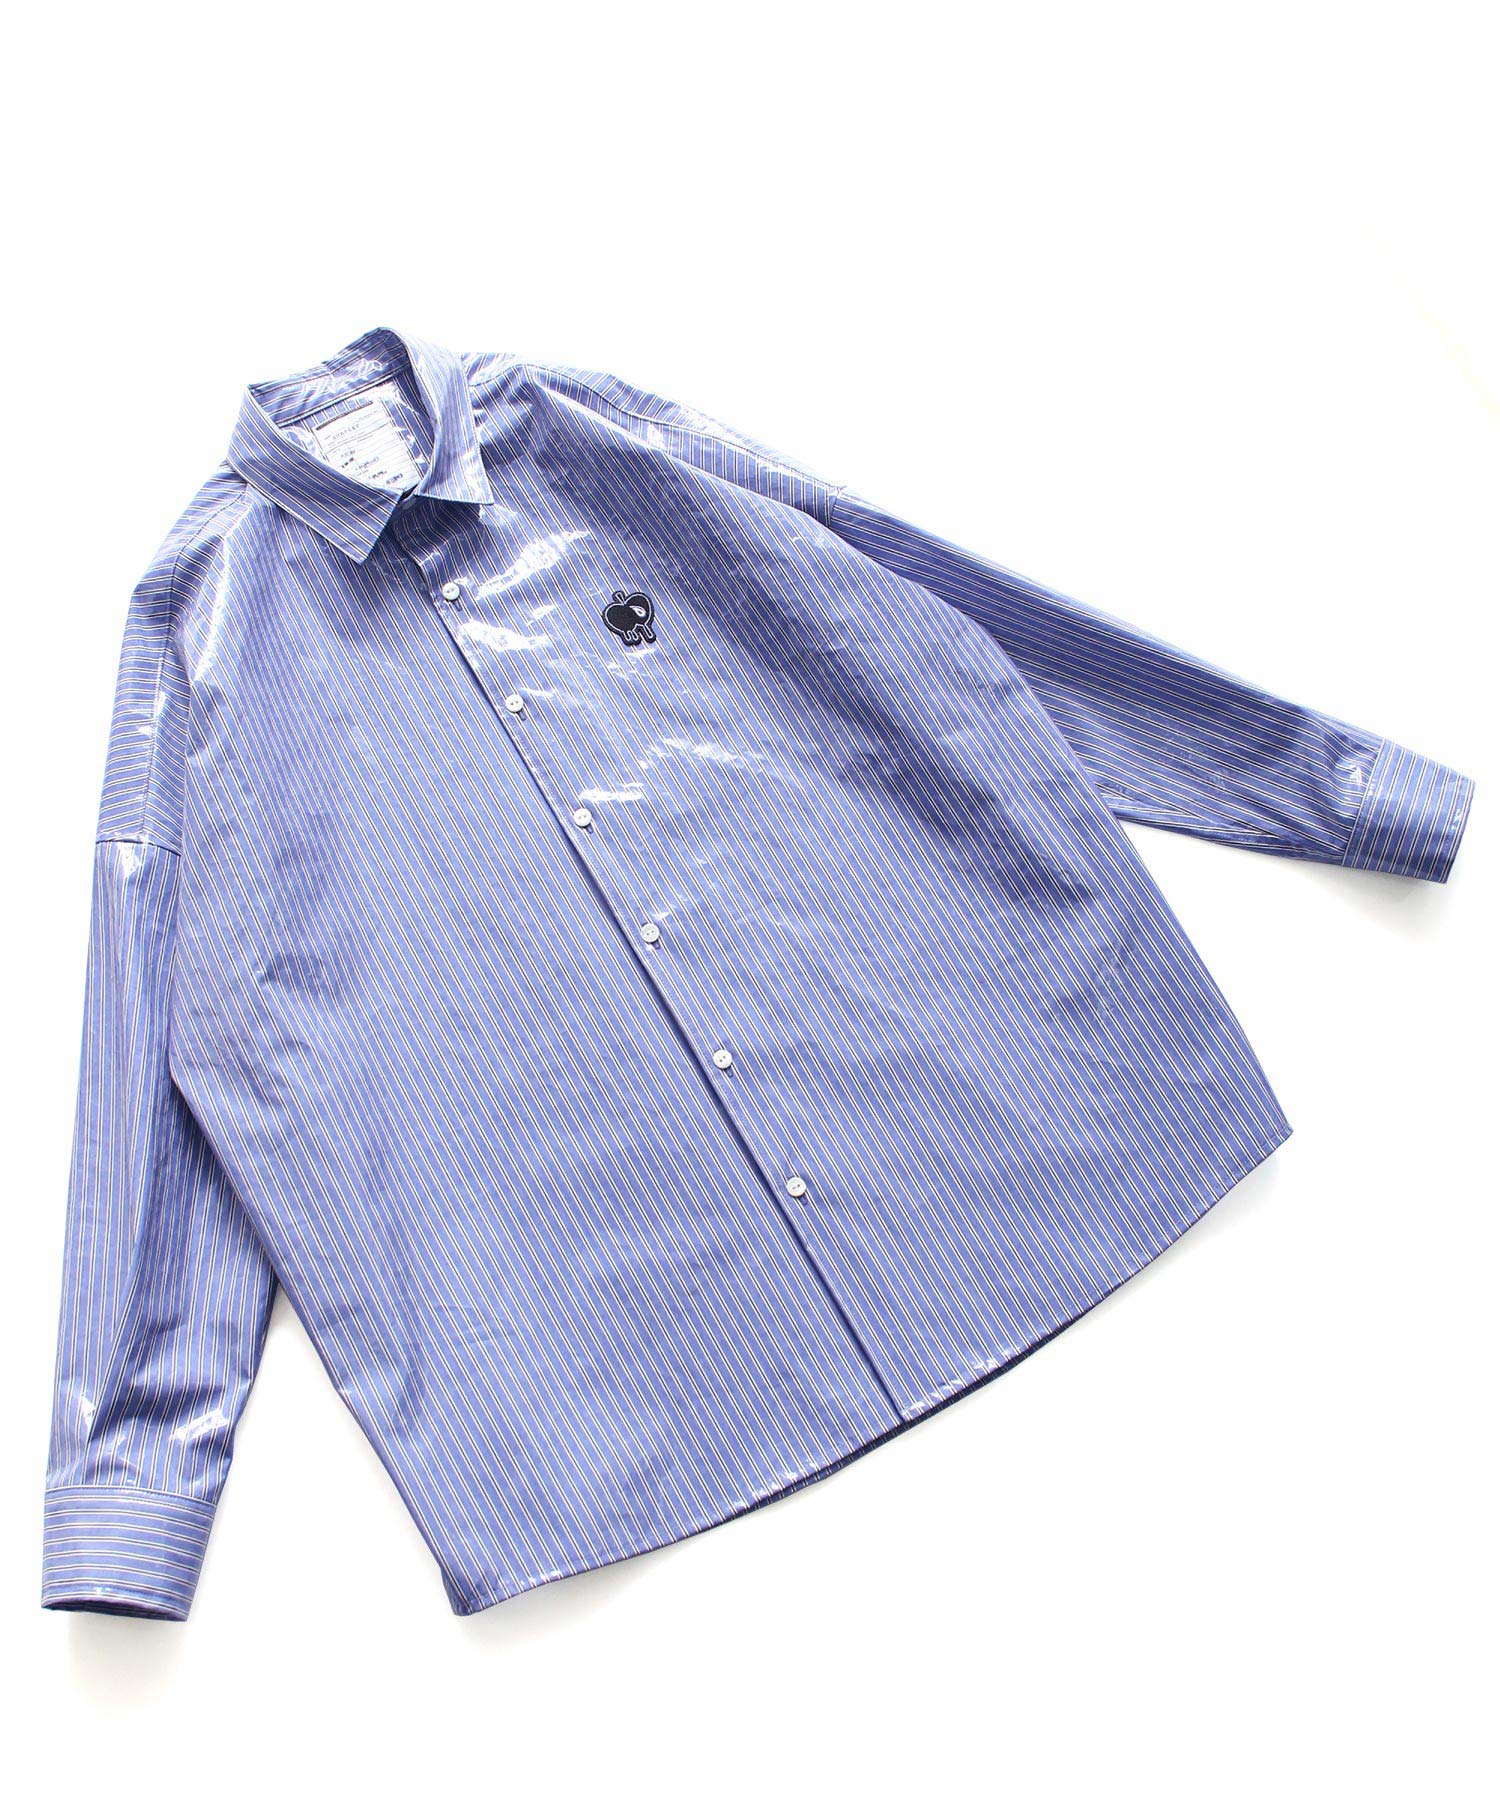 LAMINATE STRIPE L/S SHIRTS SHAREEF